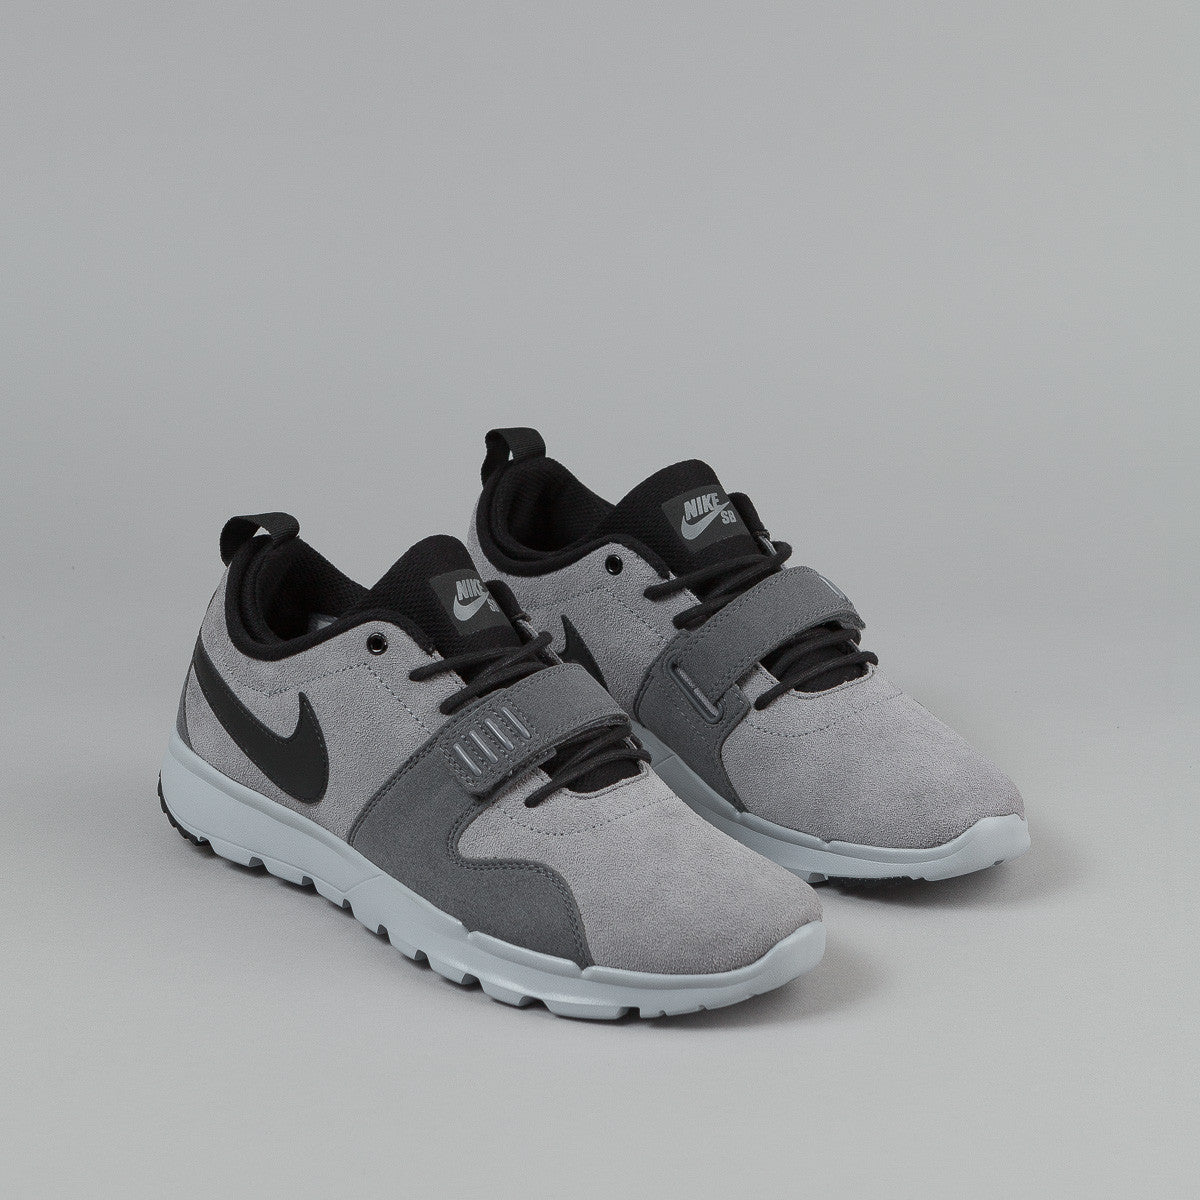 Nike SB Trainerendor L Shoes - Cool Grey / Black - Dark Grey - Wolf Grey